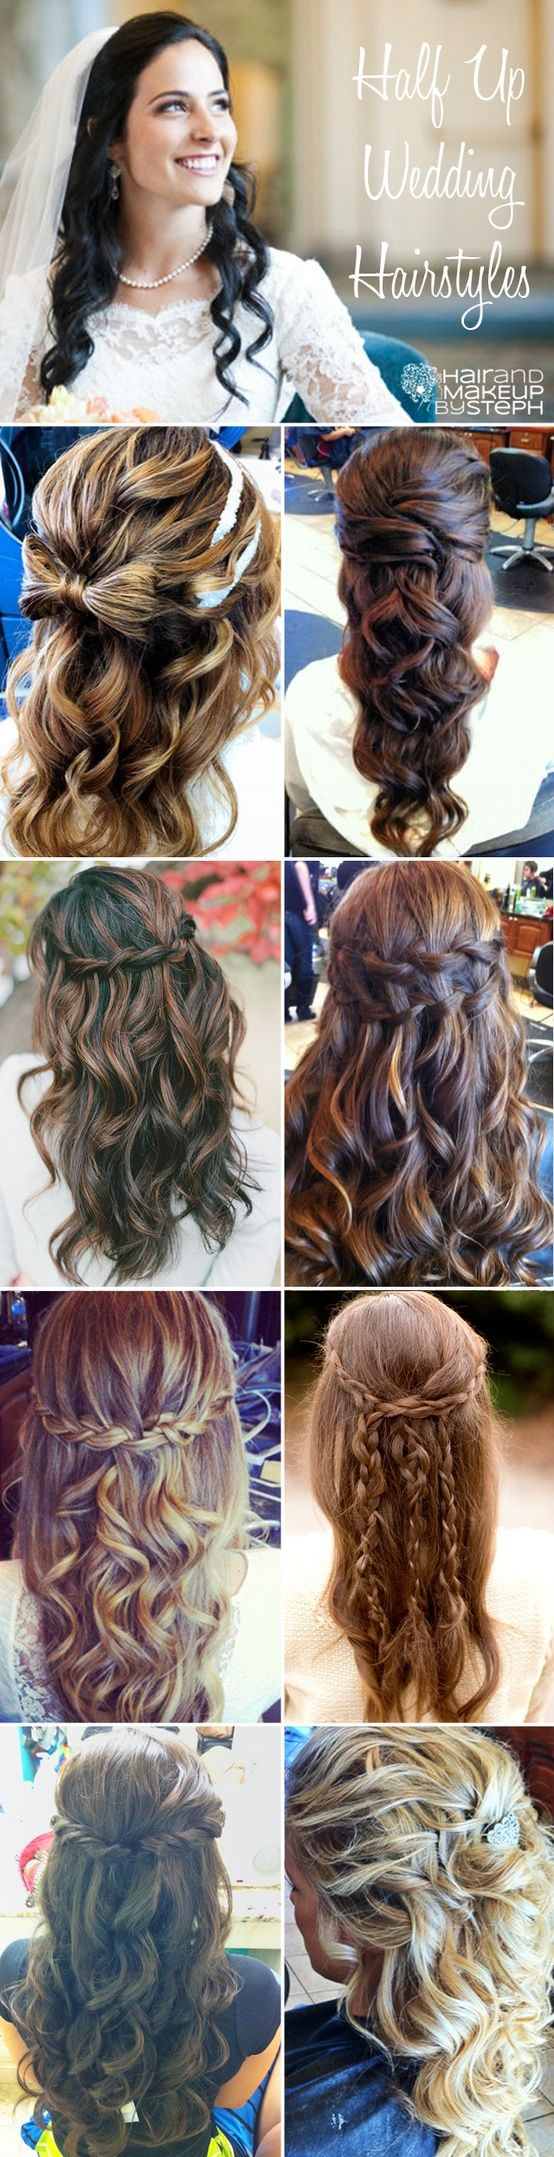 Different ways to have your hair half upach wedding